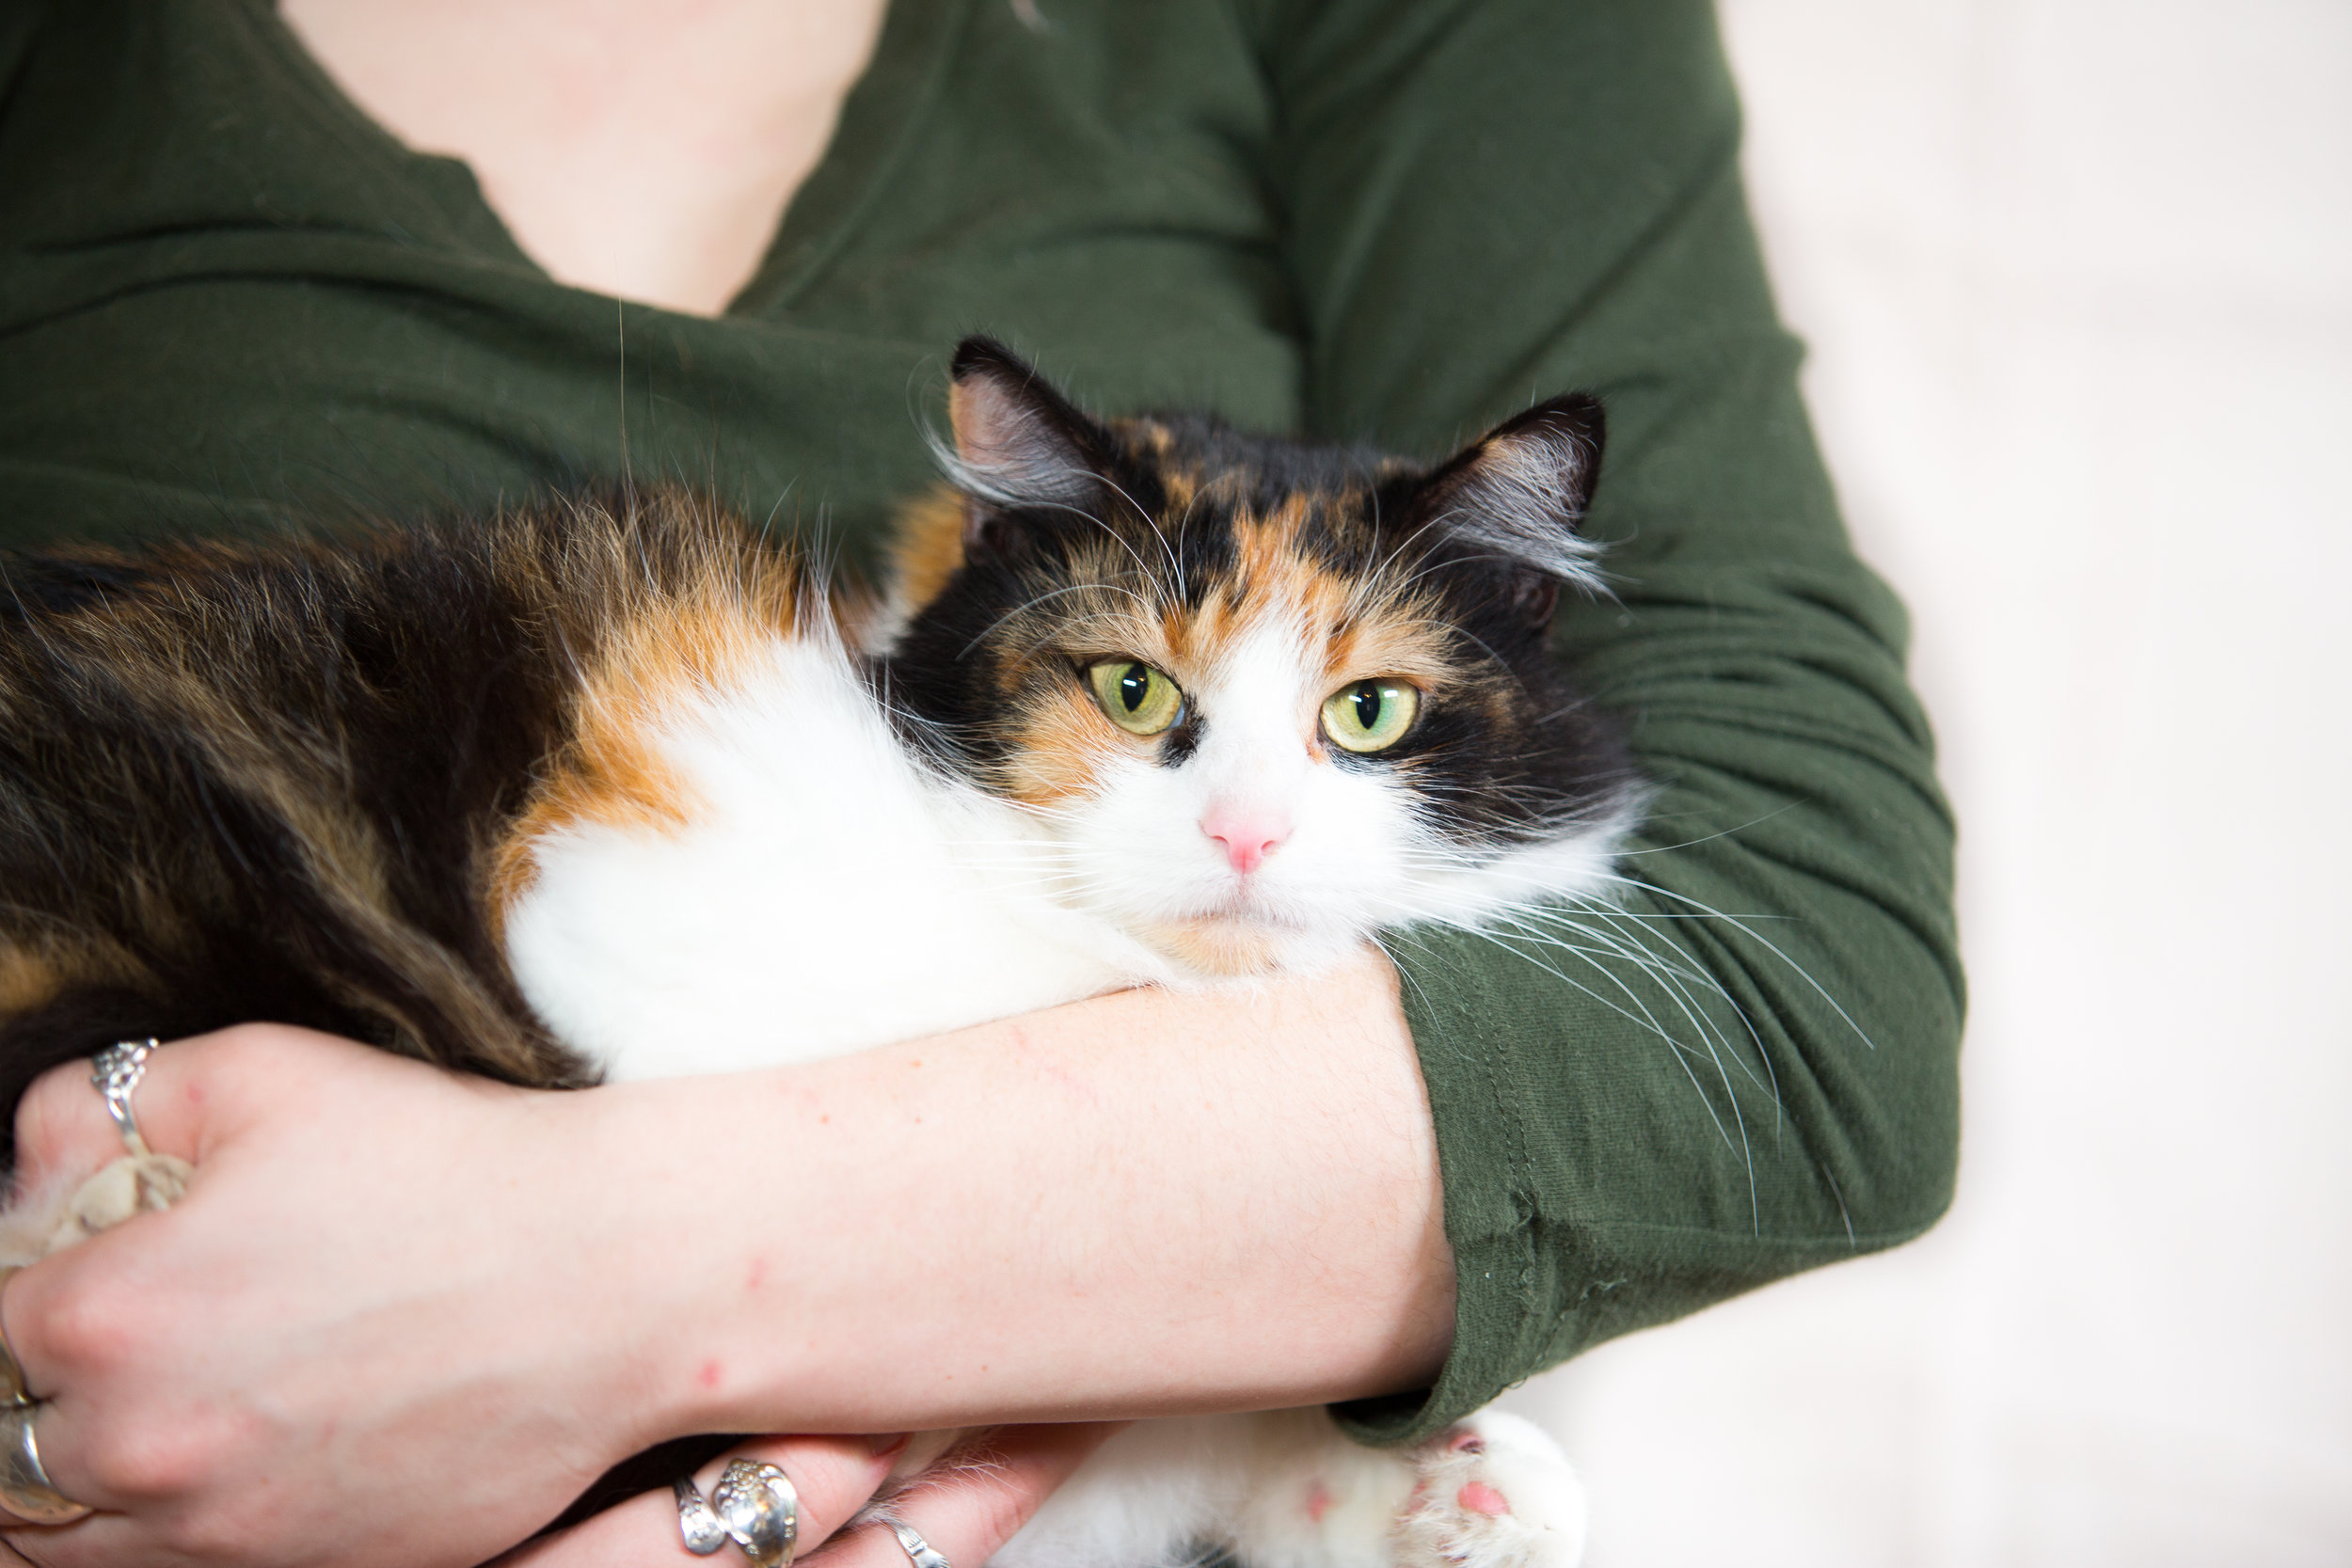 Patches, 3-year-old female